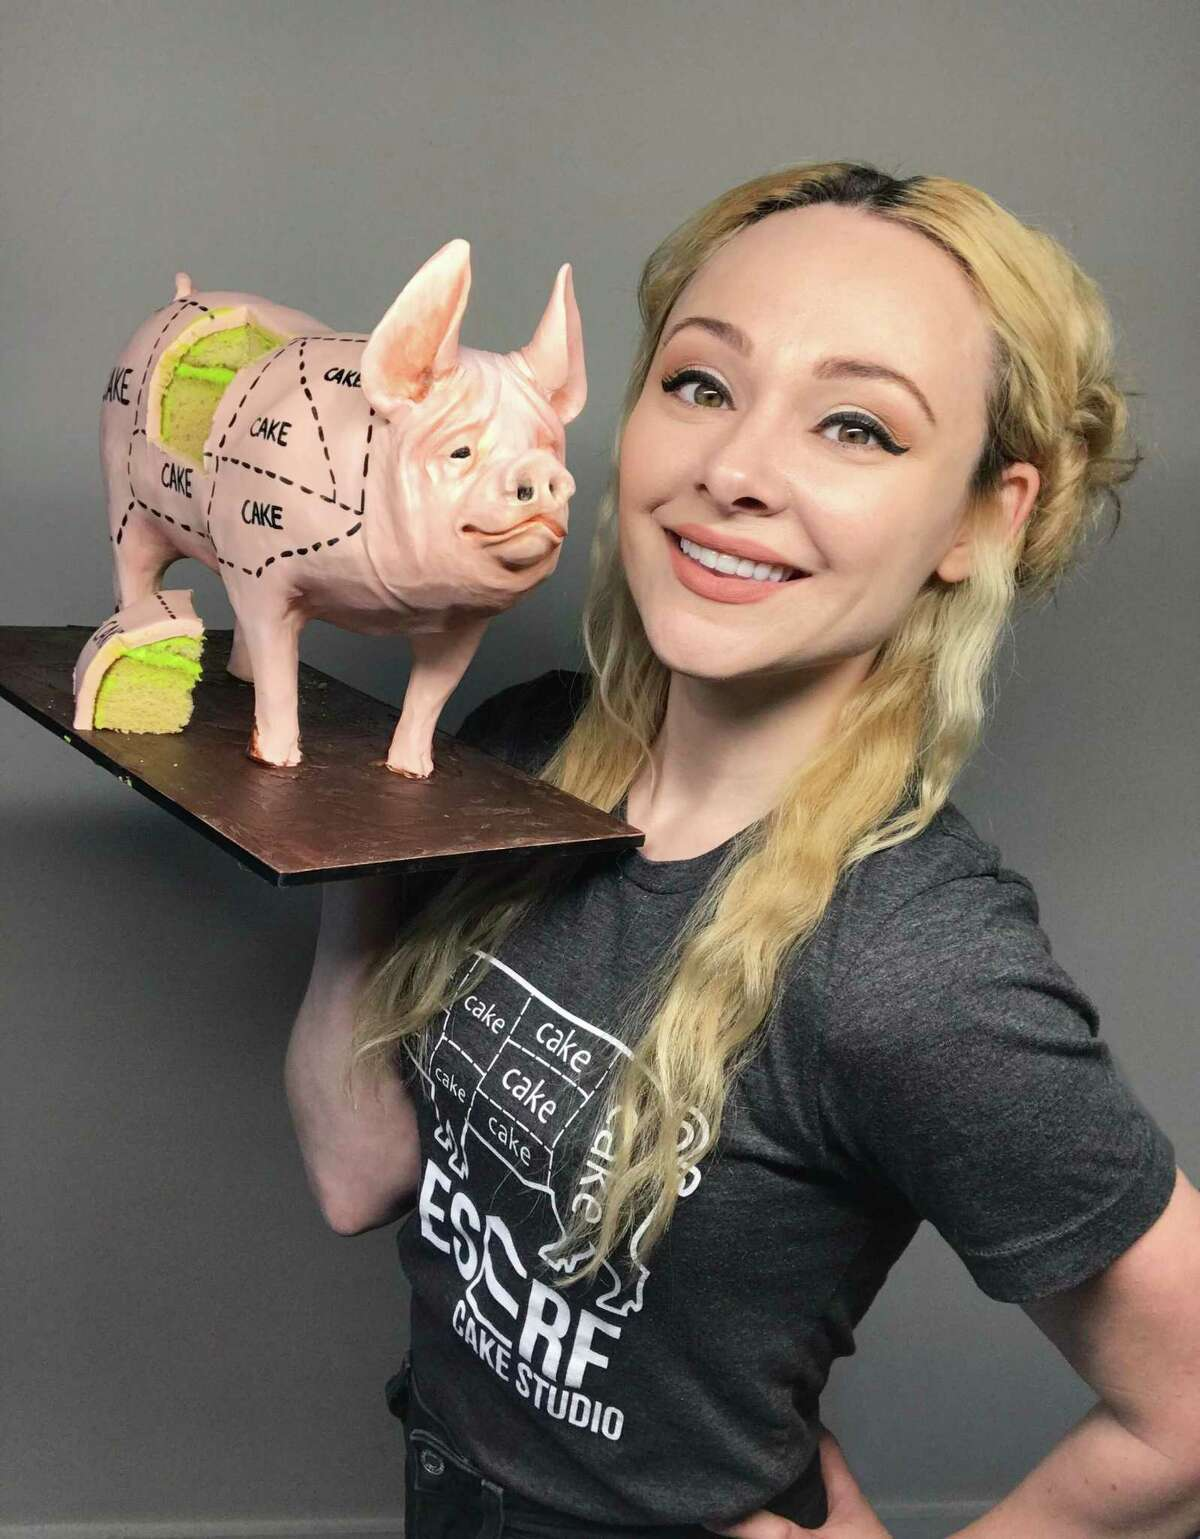 This is actually Natalie Sideserf of Sideserf Cake Studio, and not a cake. Oh, the pig on the left? Yes, that's definitely a cake.